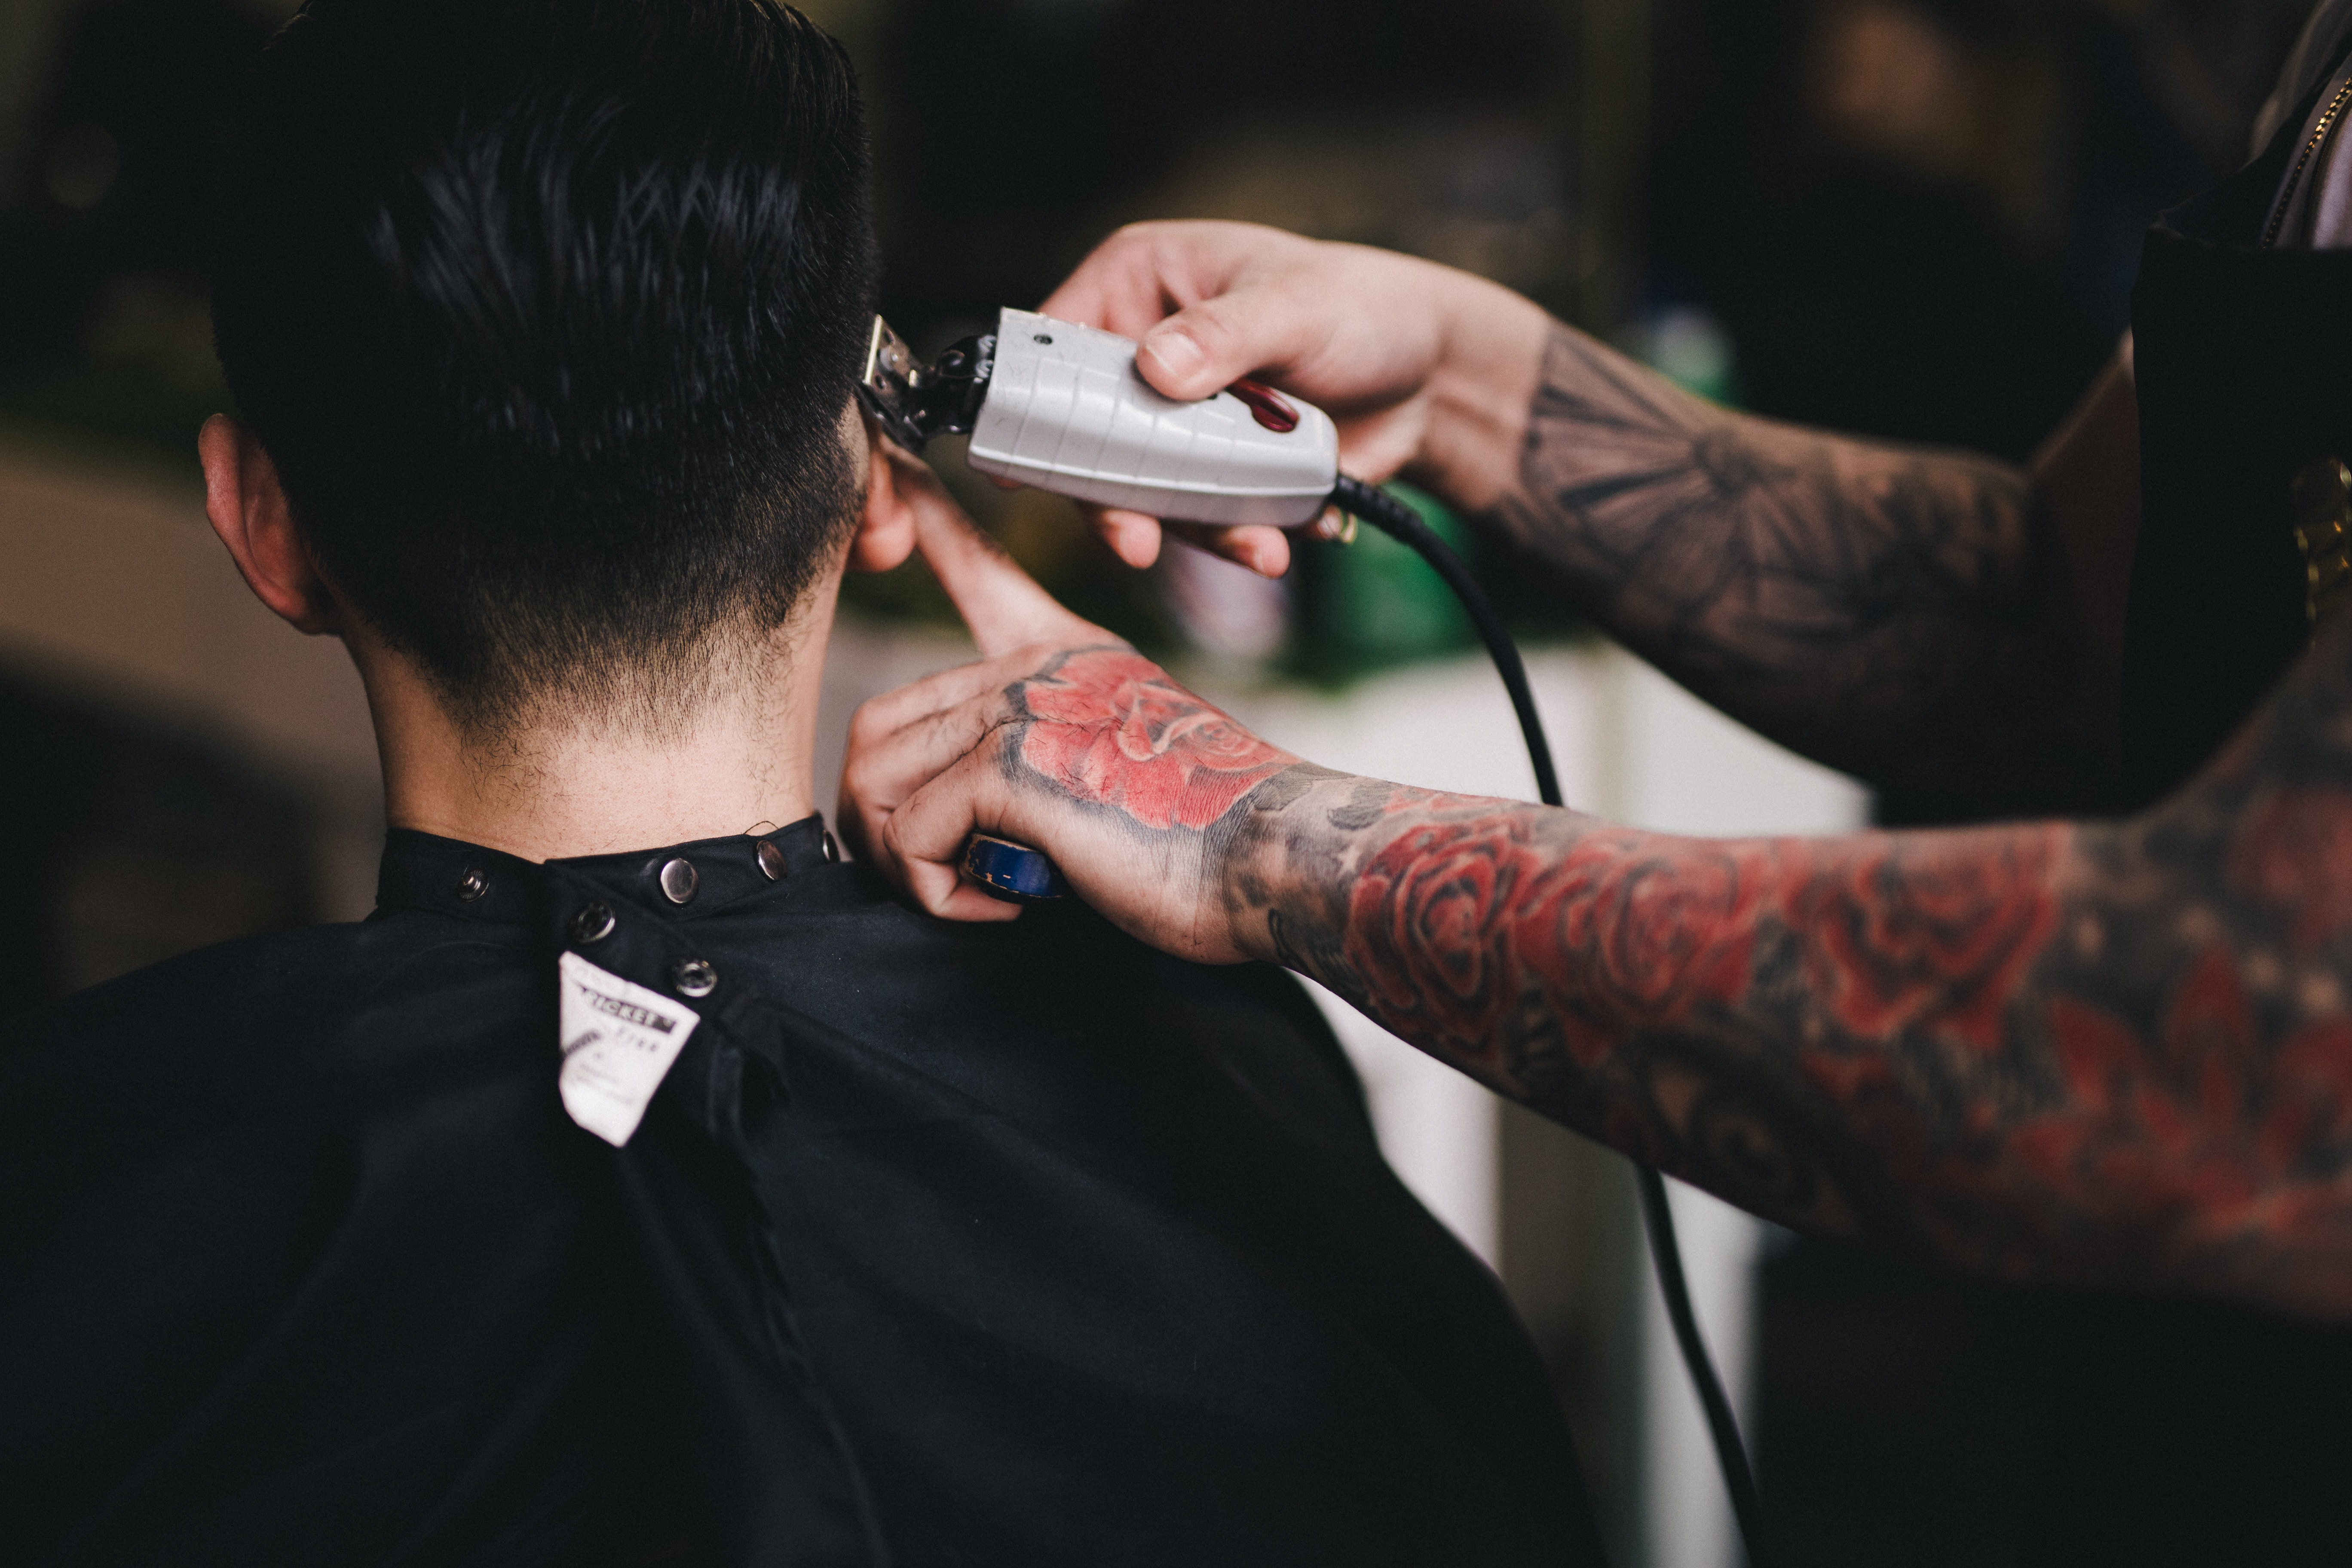 Lions Barber Collective: Supporting Men's Mental Health